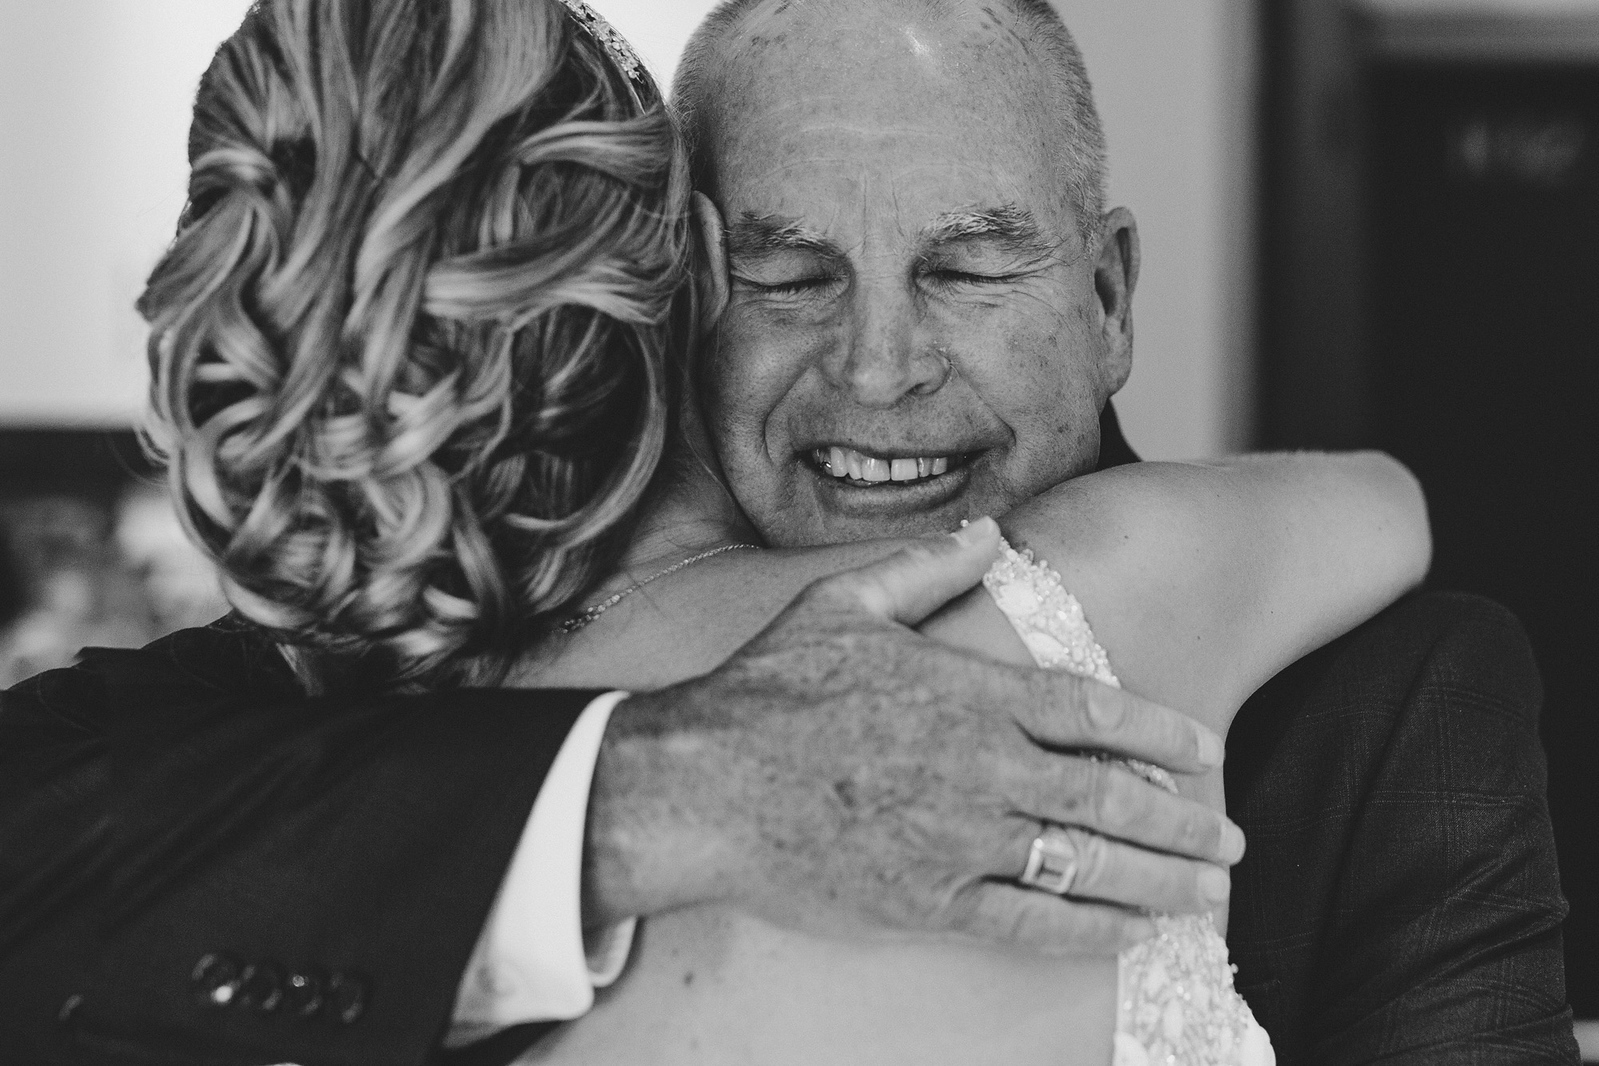 Dad and daughter embrace